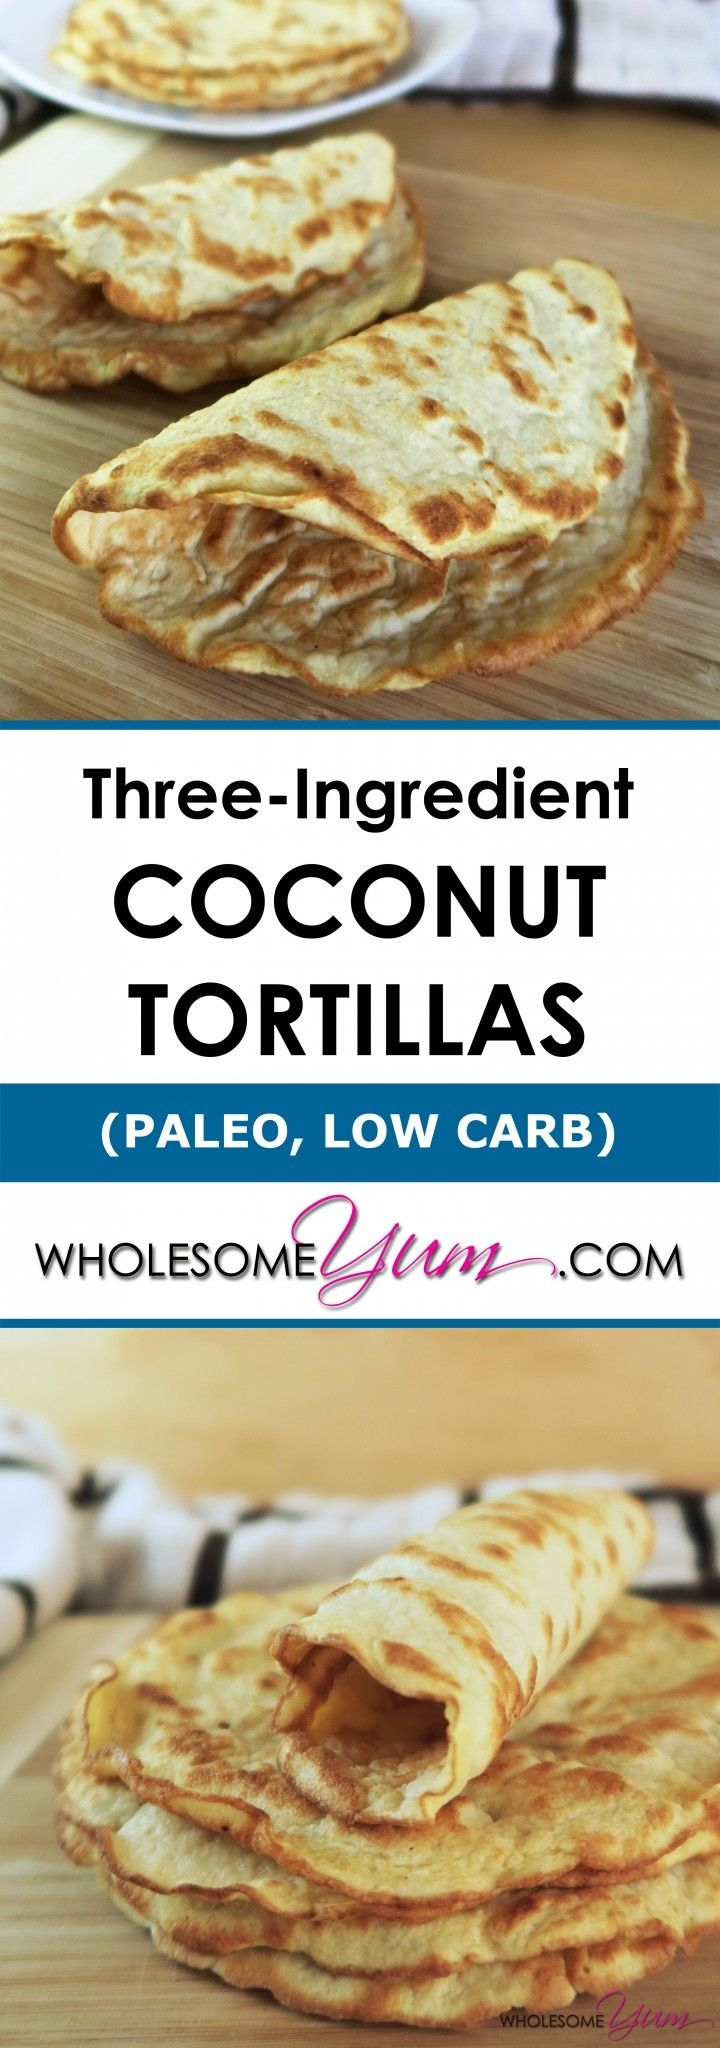 Three-Ingredient Paleo Tortillas. Makes 8. Pr tortilla: 63 cal, 4g fat, 6g carb, 5g protein, 4g fiber